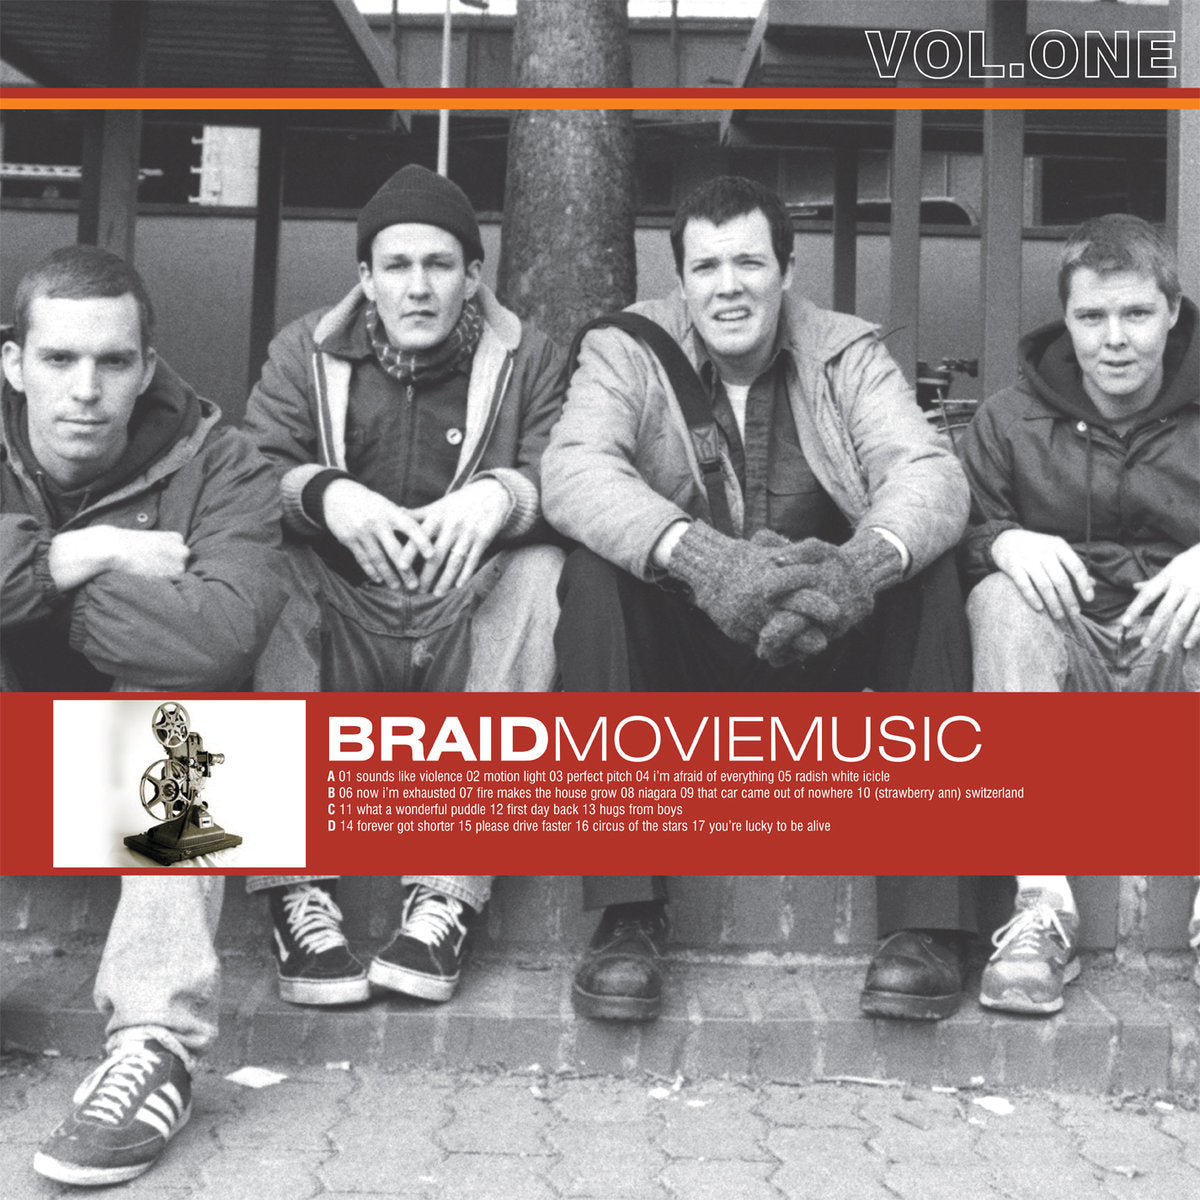 Braid - Movie Music Vol. 1 LP - Vinyl